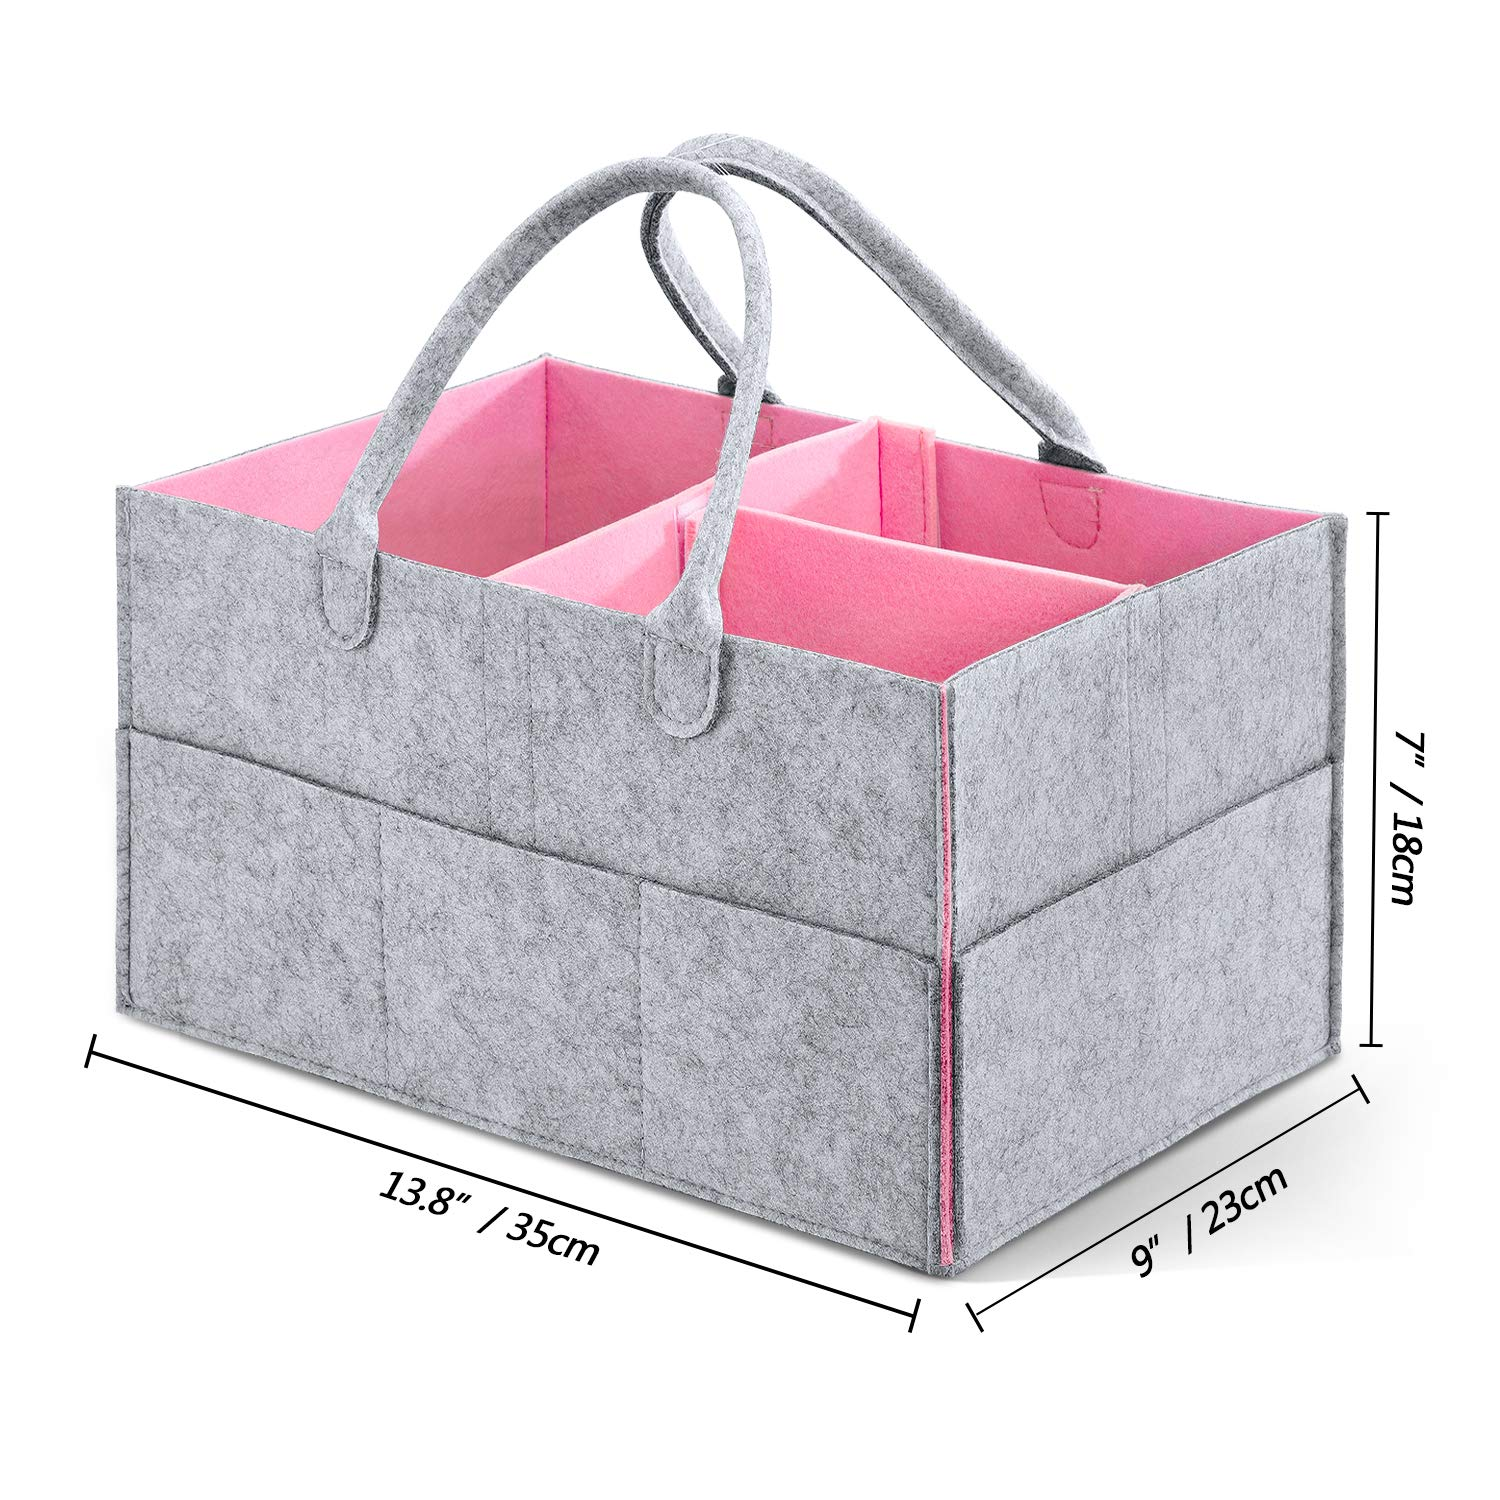 Baby Diaper Caddy,HBlife Nursery Storage Bin Portable Diaper Storage Caddy with Changeable Compartments Pink